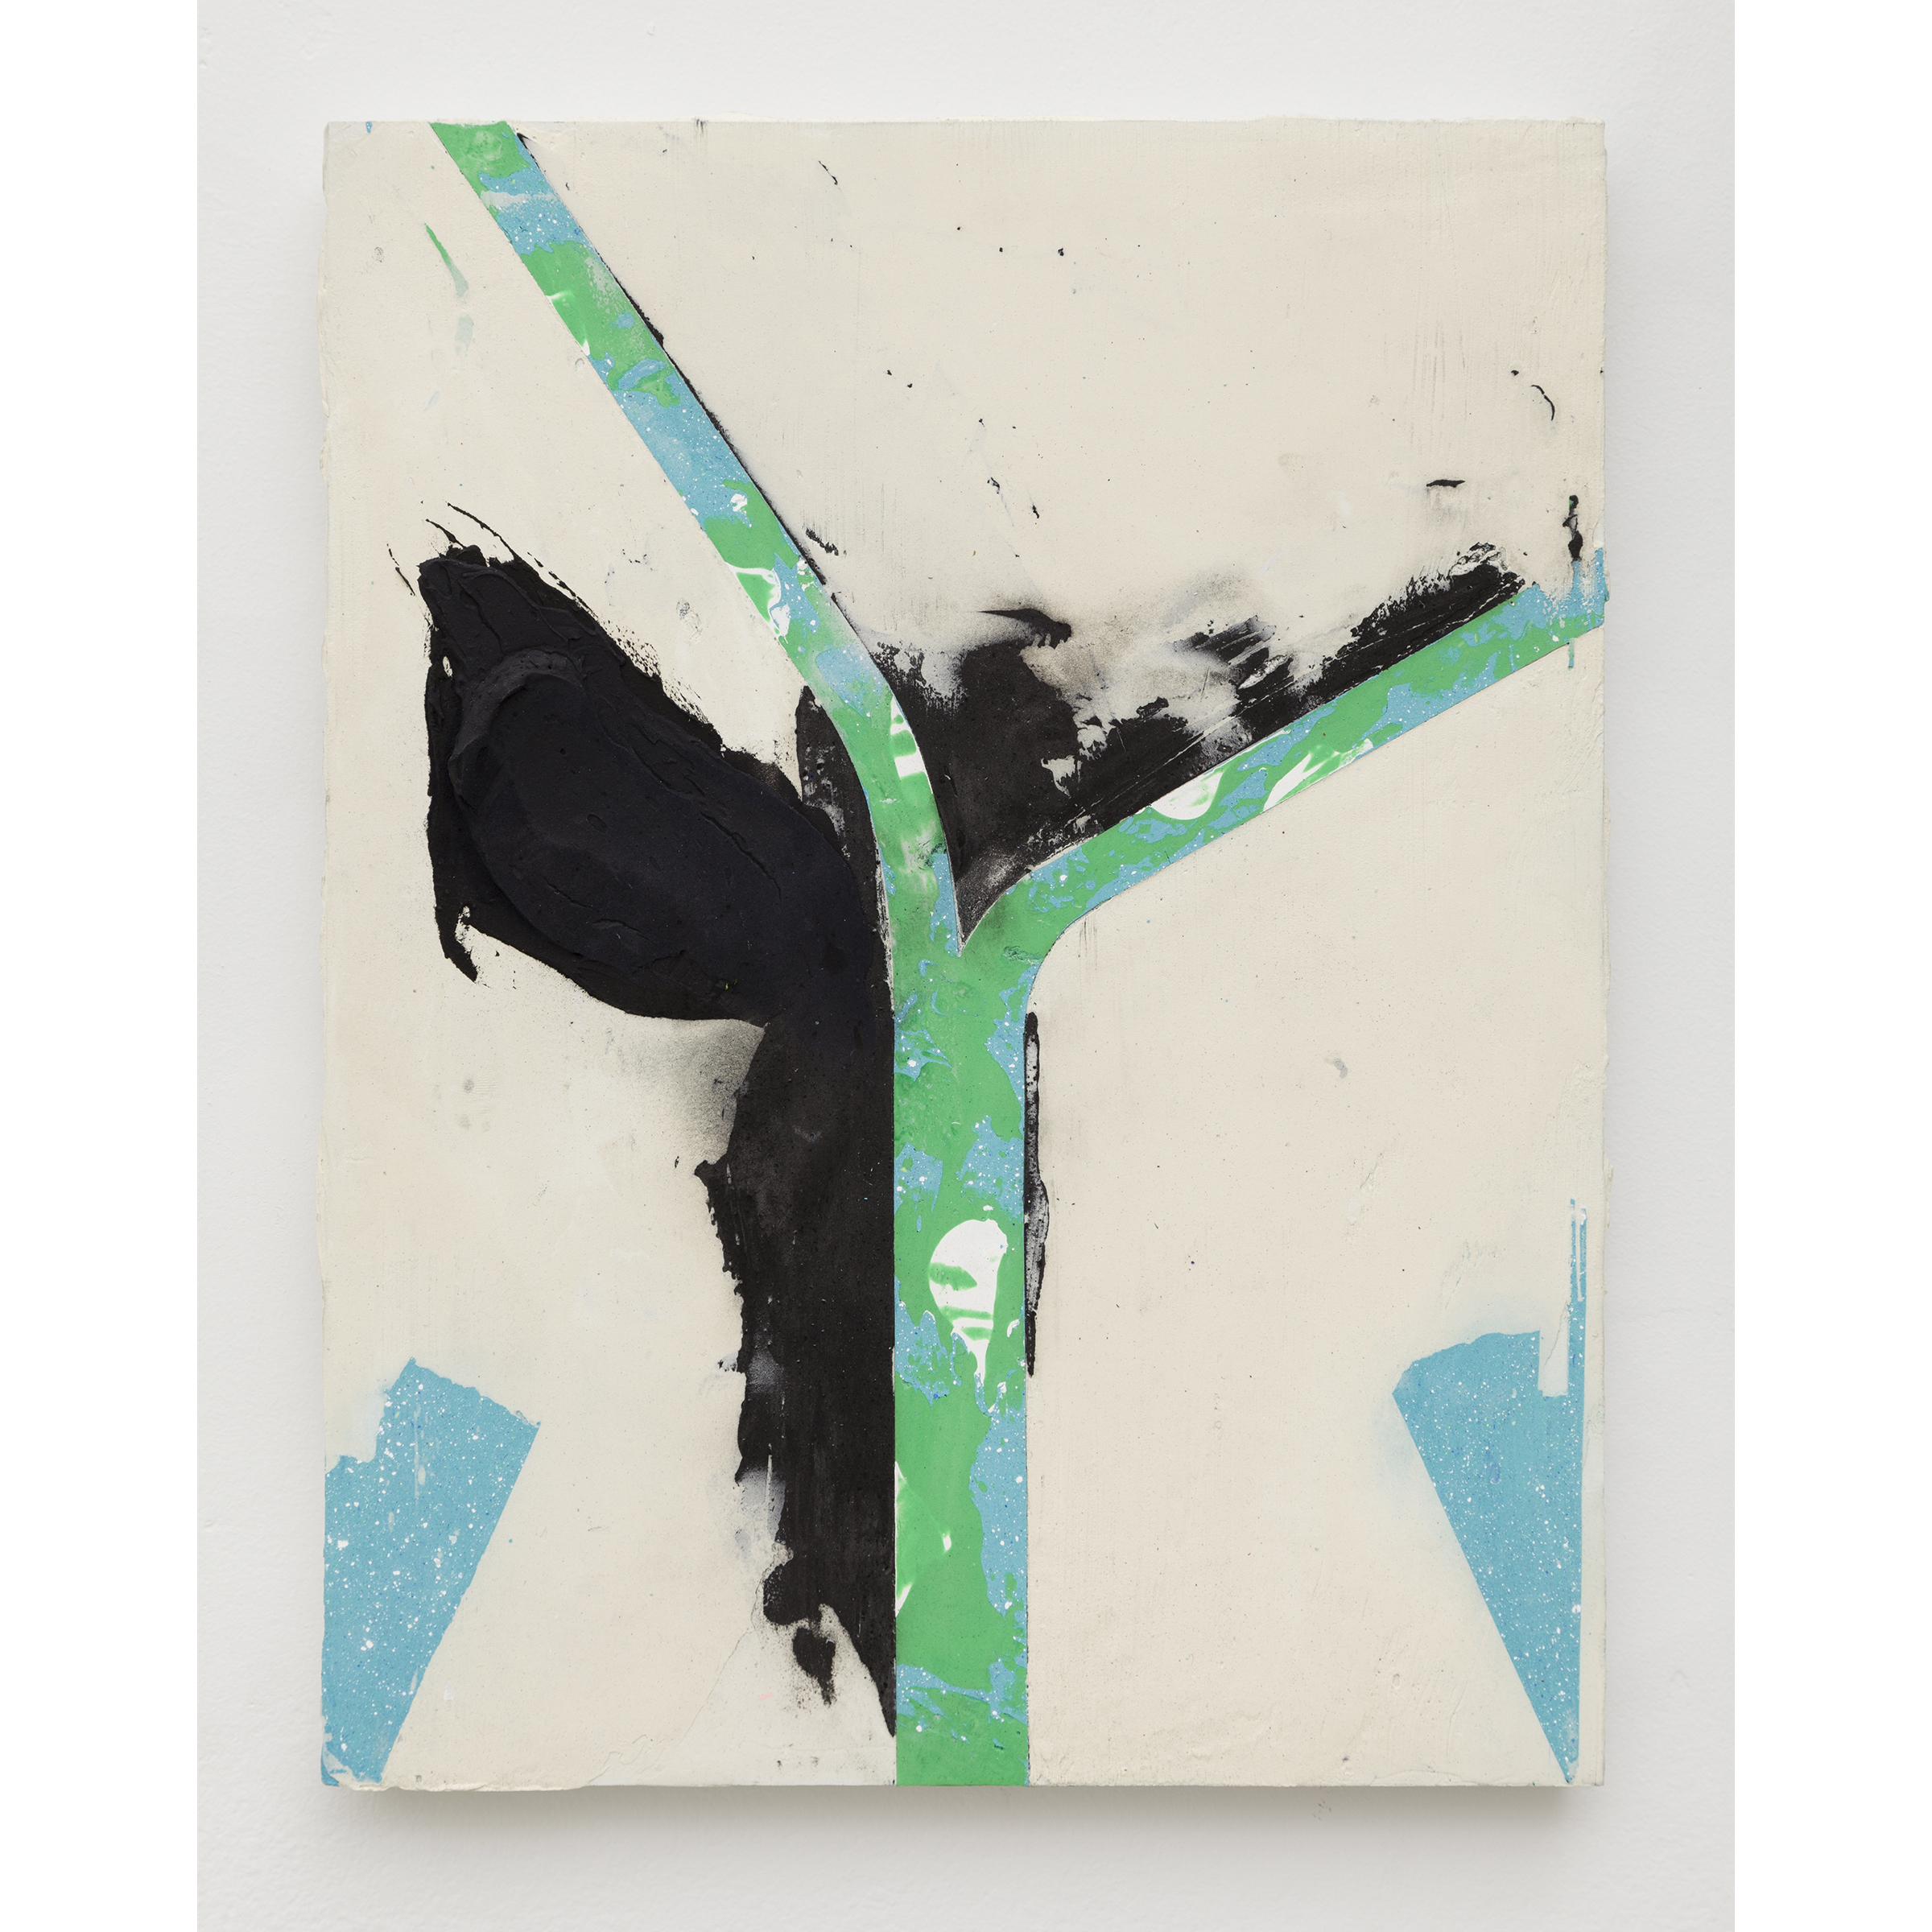 Nicolas Roggy, Untitled , 2014,primer, modeling paste, pigment,acrylic paint on PVC,11.8 x 15.3 x 0.7 in